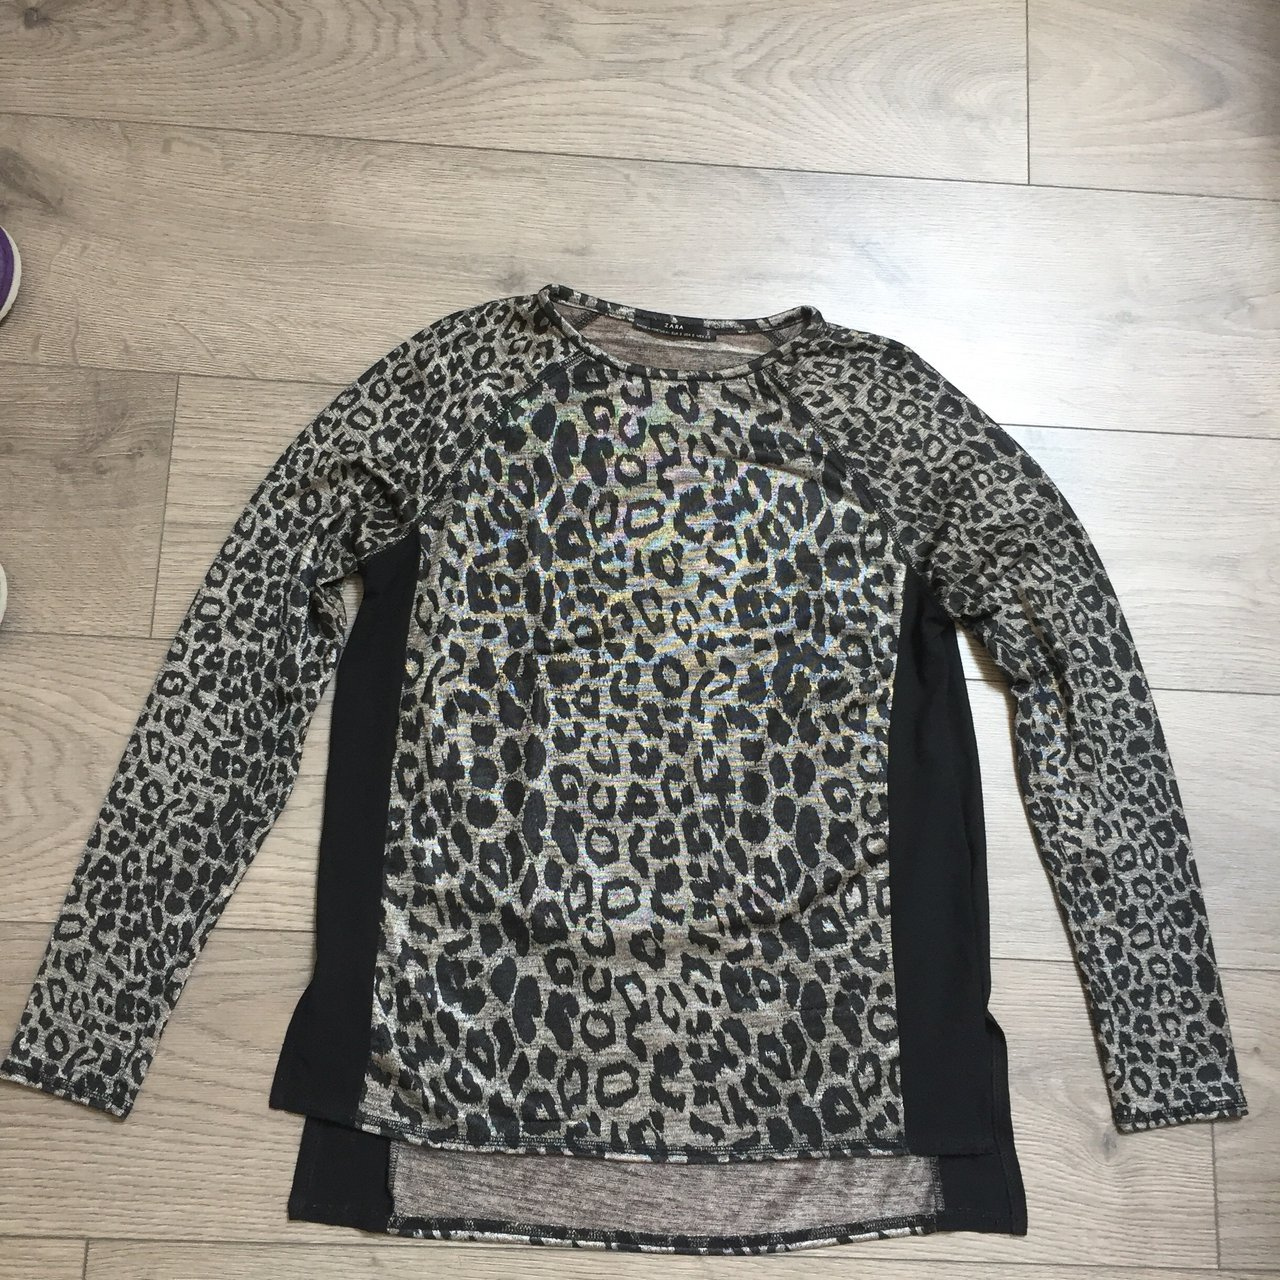 9442034a65c8f Zara black and gold leopard print long sleeve top. Size S. - Depop